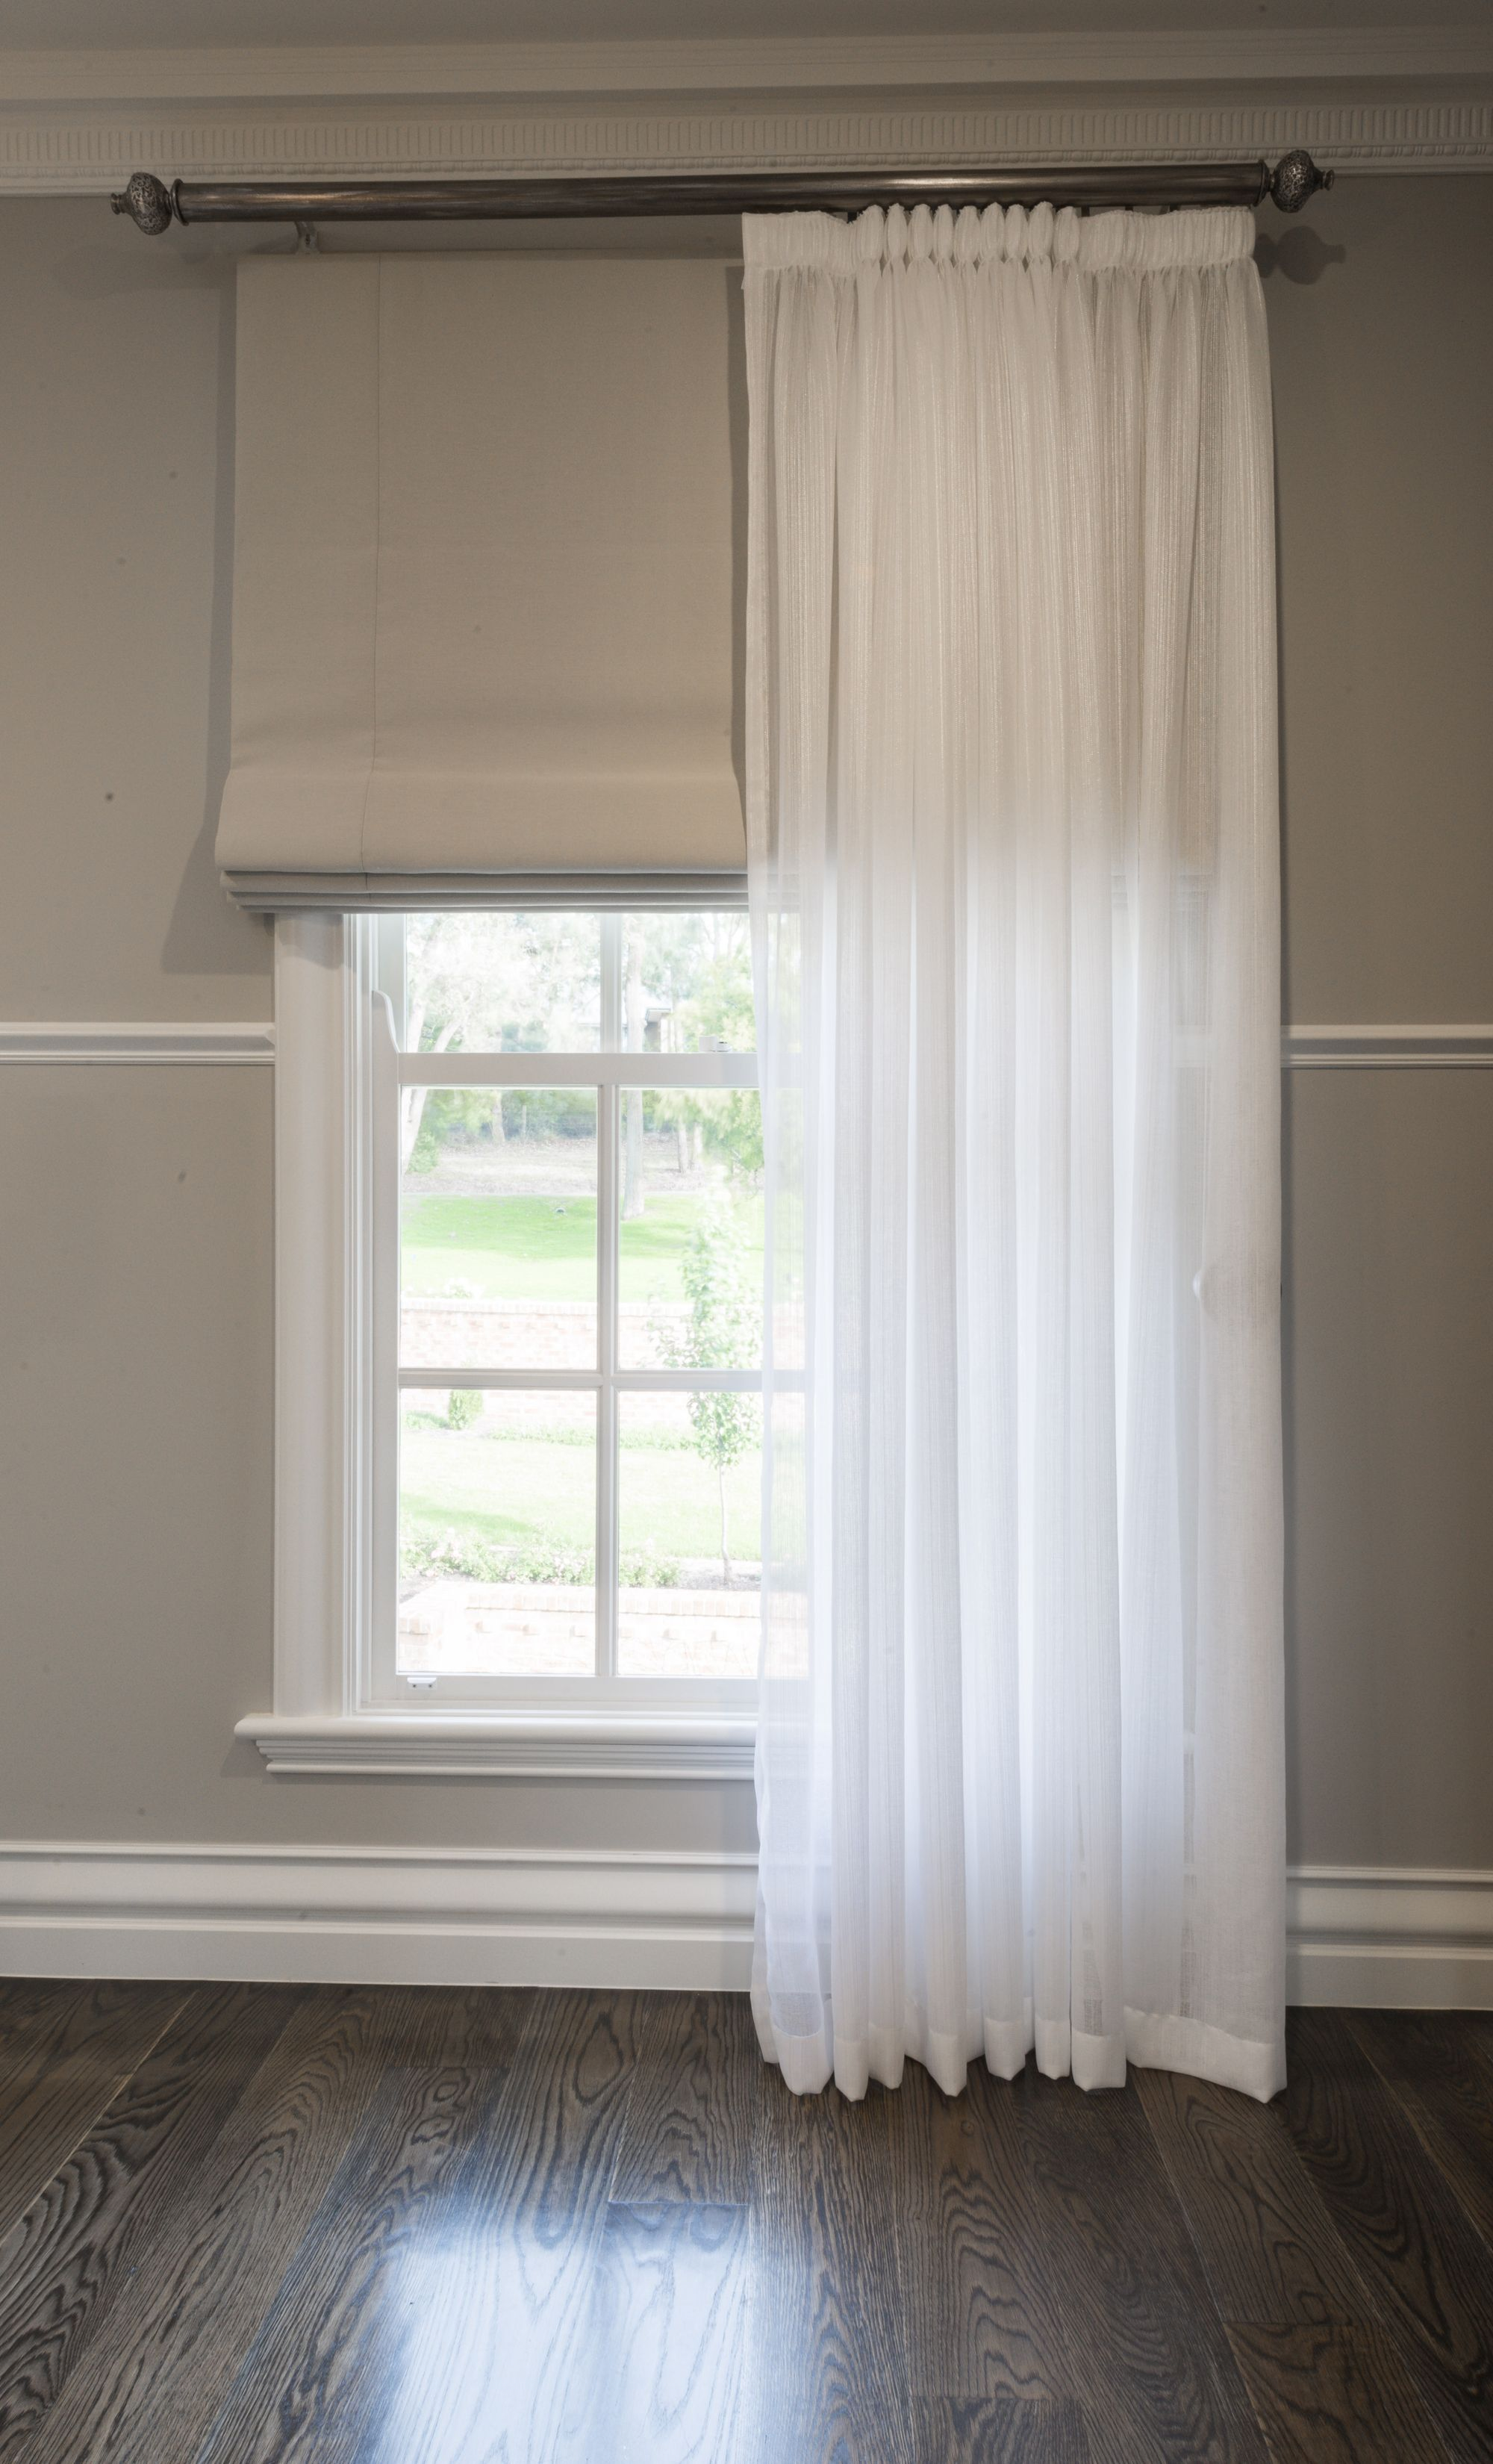 Spotlight Ready To Hang Sheer Curtains Pictures Of Curtains Over Blinds Architectural Design